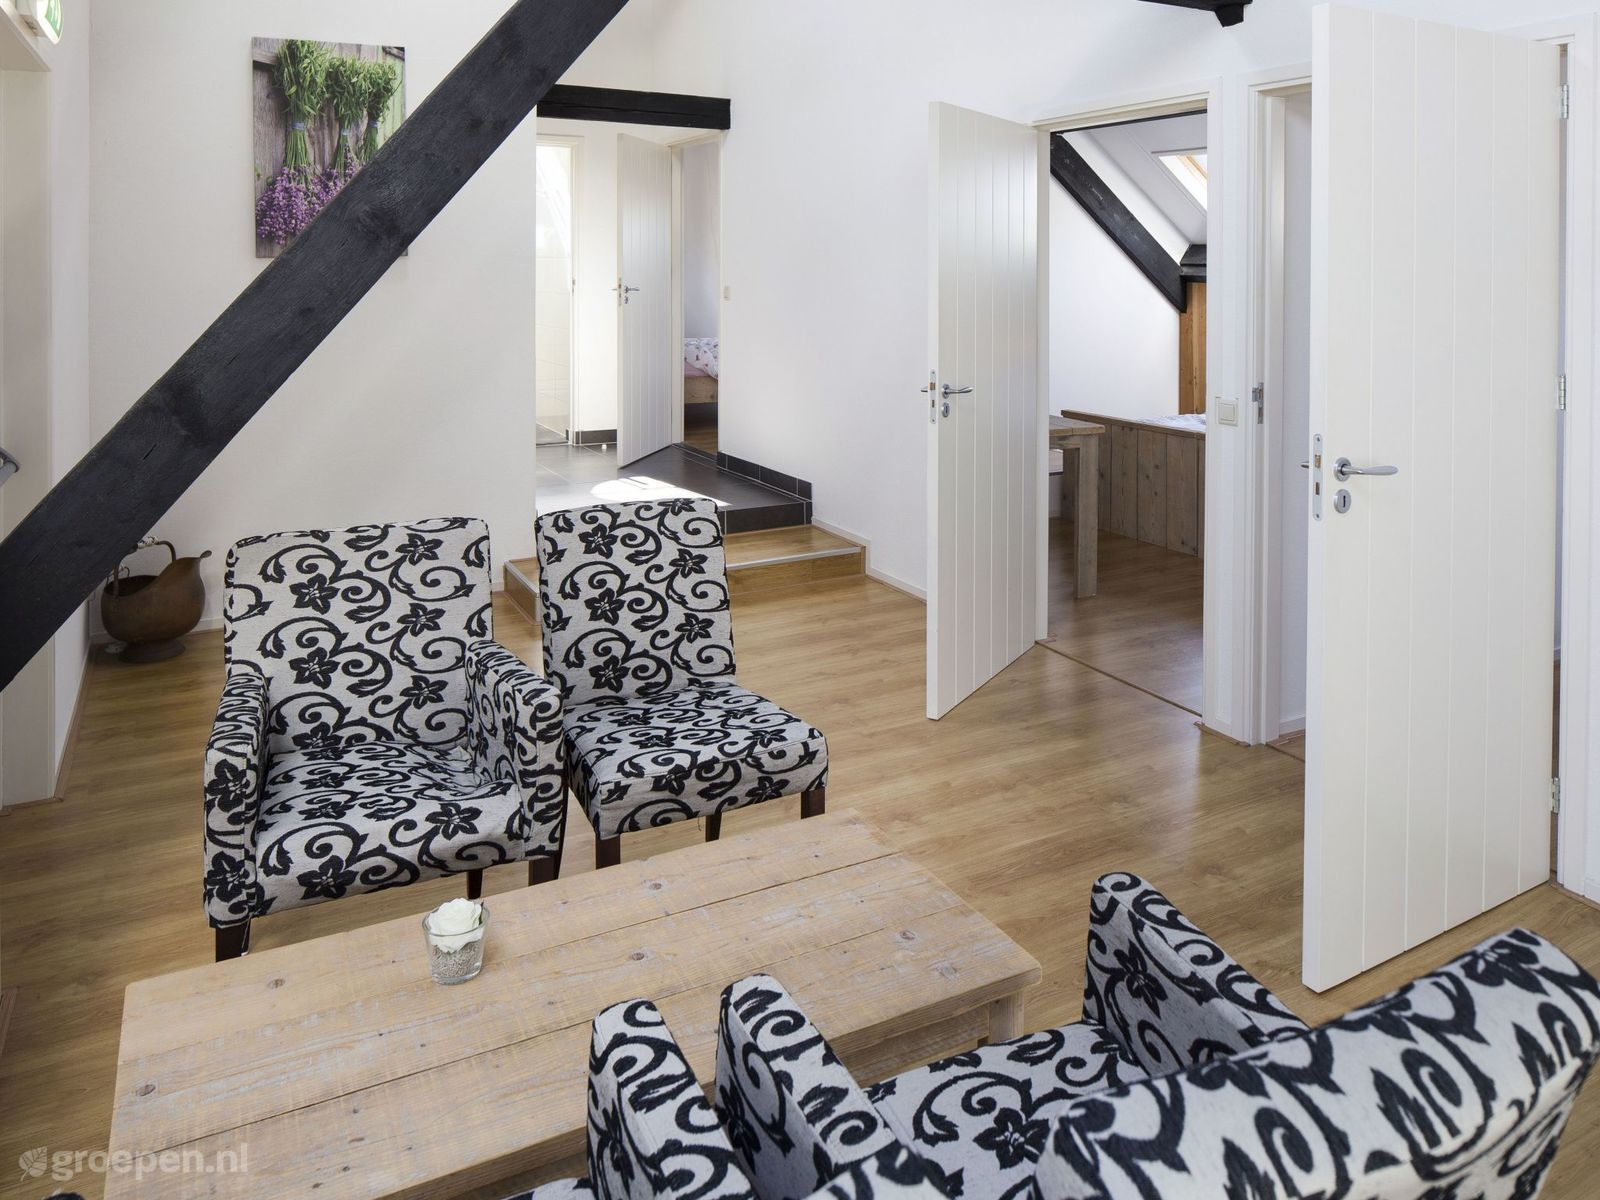 Wohnzimmer Interior Design Zeeland Holiday Farmhouse In Oude Willem Small Odw 1455 Small